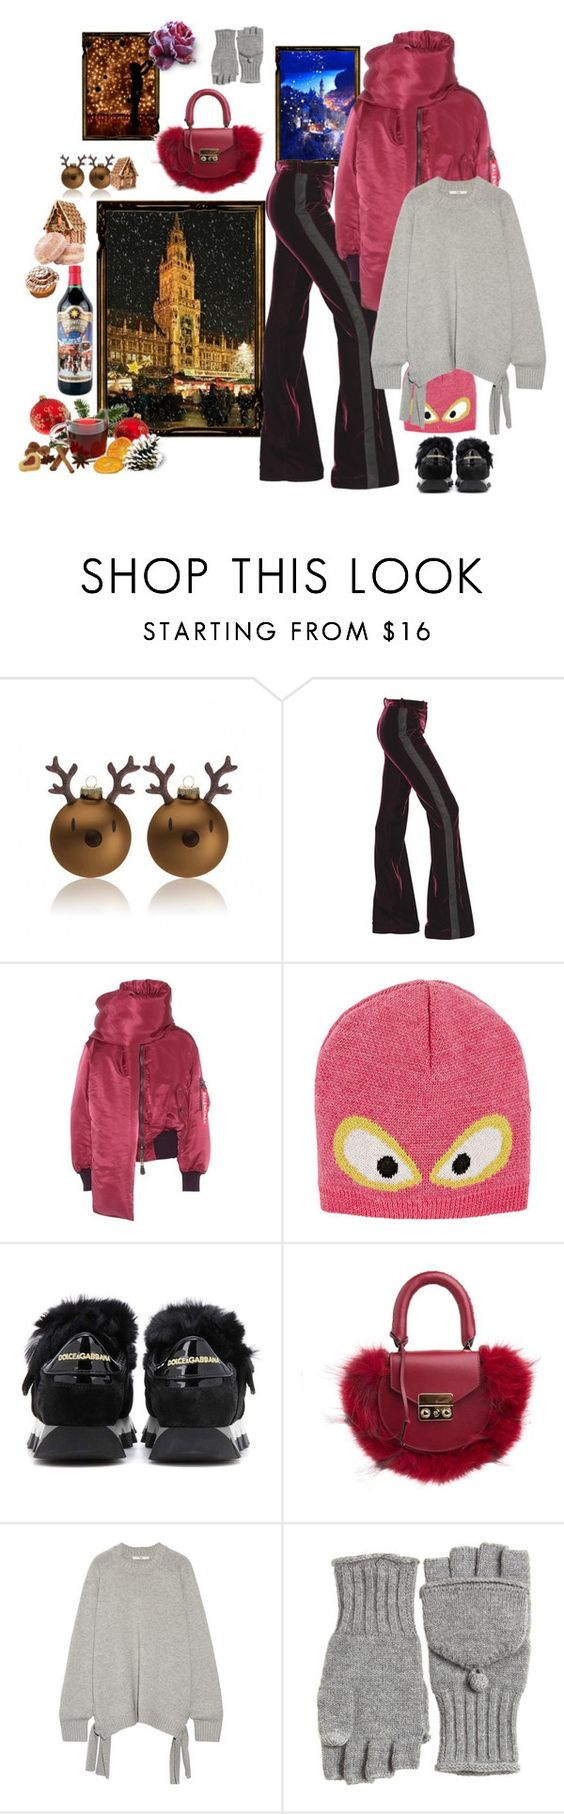 """""""Casual Christmas Market Opening! Let's get jolly!"""" by juliabachmann ❤ liked on Polyvore featuring Roberto Cavalli, Balenciaga, Fendi, Dolce&Gabbana, SALAR, TIBI and Calypso St. Barth"""